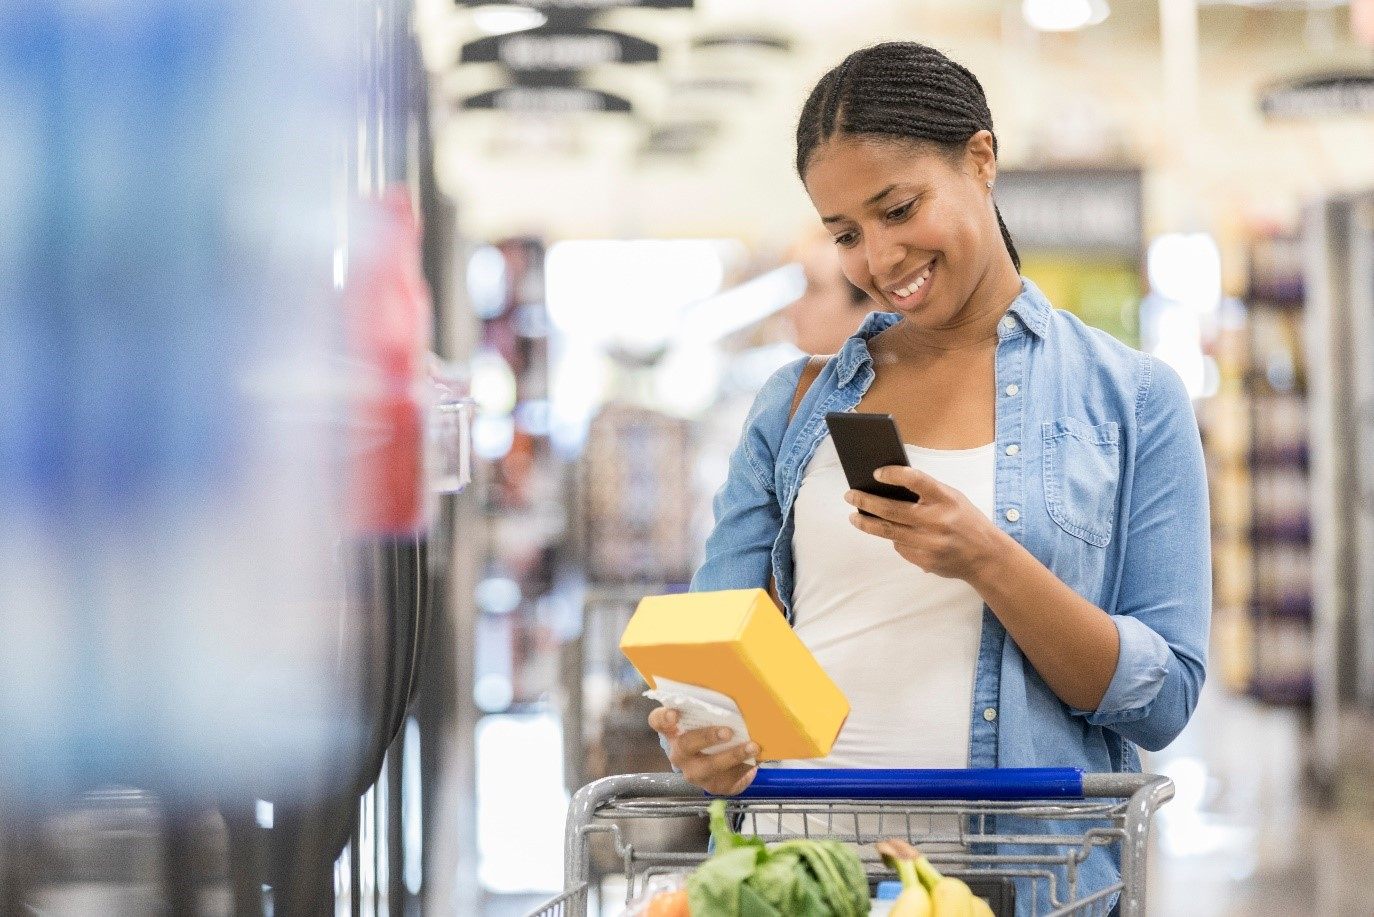 selfscanning, empowering consumers